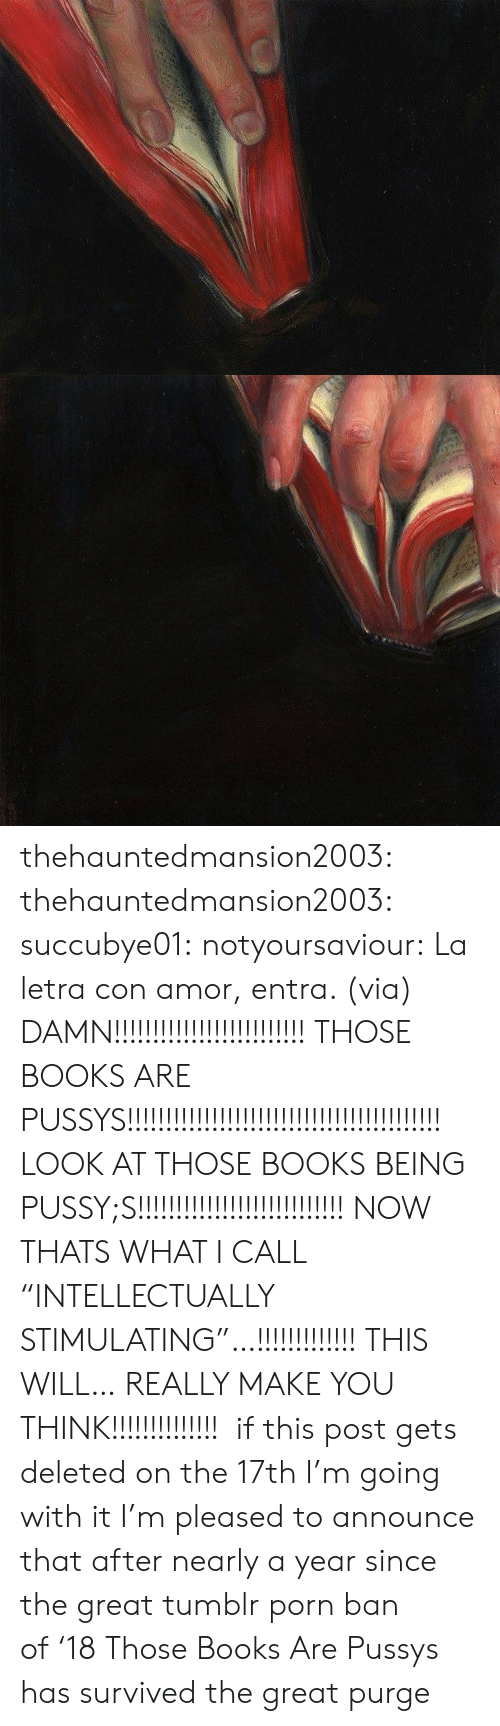 """Books, Facebook, and Target: thehauntedmansion2003:  thehauntedmansion2003:  succubye01:  notyoursaviour:  La letra con amor, entra. (via)  DAMN!!!!!!!!!!!!!!!!!!!!!!!!! THOSE BOOKS ARE PUSSYS!!!!!!!!!!!!!!!!!!!!!!!!!!!!!!!!!!!!!!!!! LOOK AT THOSE BOOKS BEING PUSSY;S!!!!!!!!!!!!!!!!!!!!!!!!!!! NOW THATS WHAT I CALL """"INTELLECTUALLY STIMULATING""""…!!!!!!!!!!!!! THIS WILL… REALLY MAKE YOU THINK!!!!!!!!!!!!!!  if this post gets deleted on the 17th I'm going with it  I'm pleased to announce that after nearly a year since the great tumblr porn ban of'18 Those Books Are Pussys has survived the great purge"""